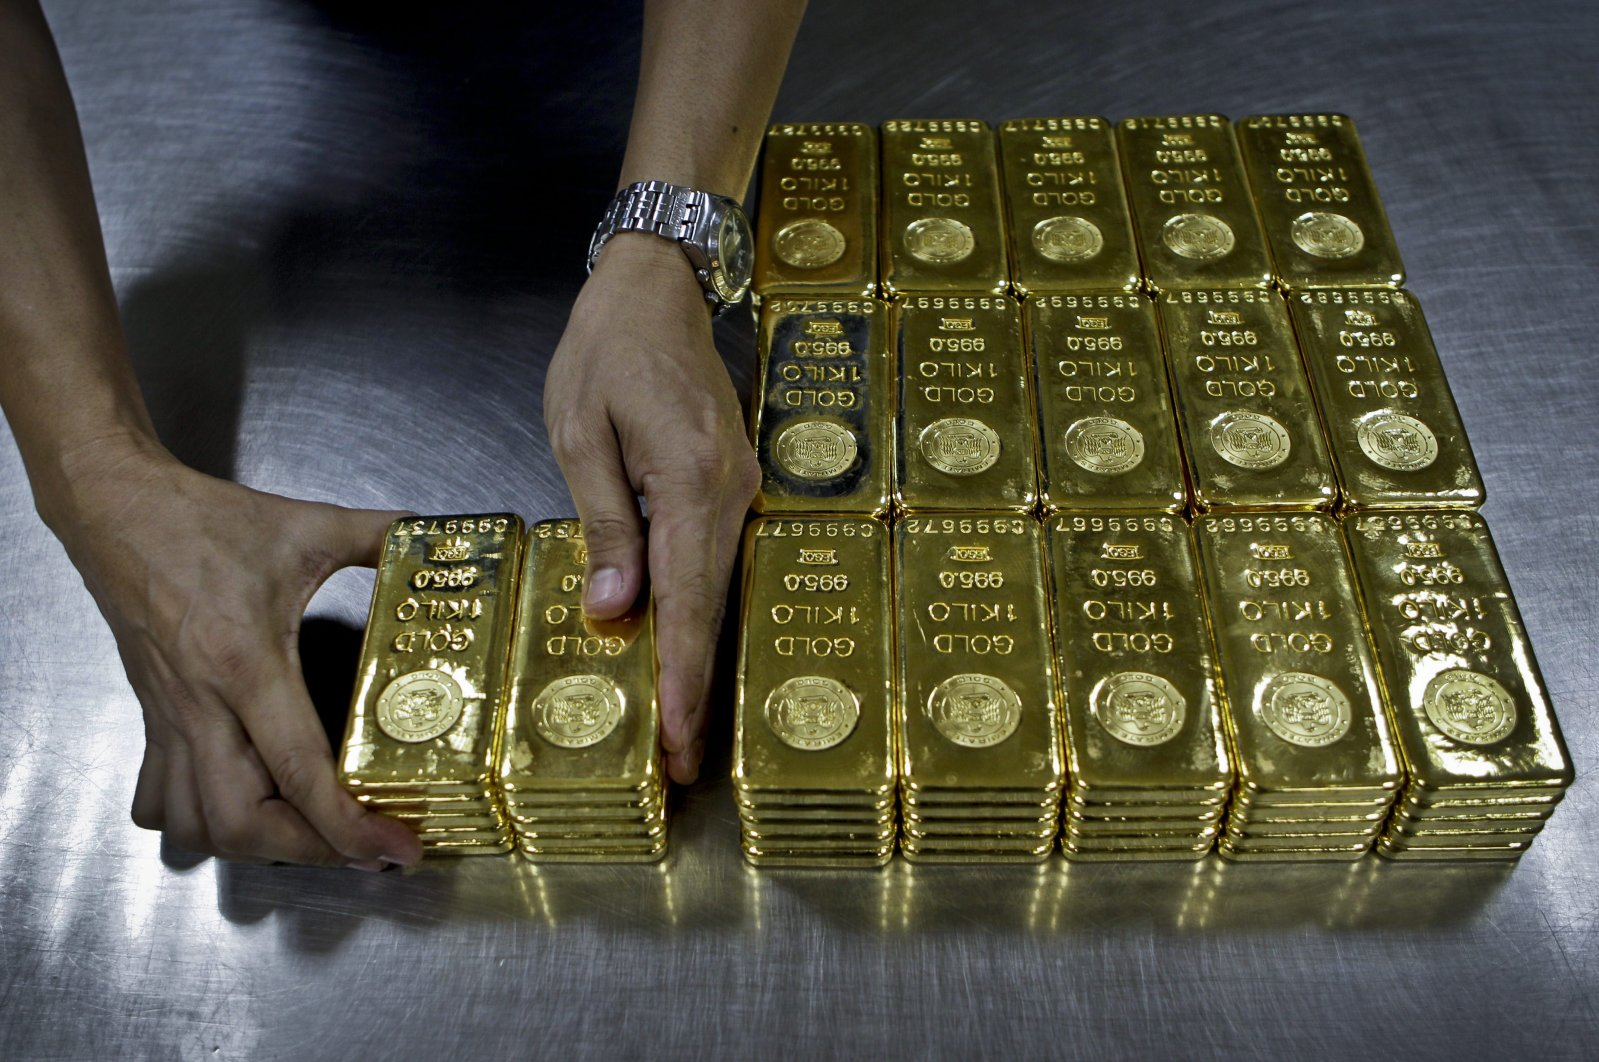 In this file photo a technician prepares 1 Kg gold bars of 995.0 purity to pack for delivery at the Emirates Gold company in Dubai, United Arab Emirates, Oct. 9, 2012. (AP Photo)